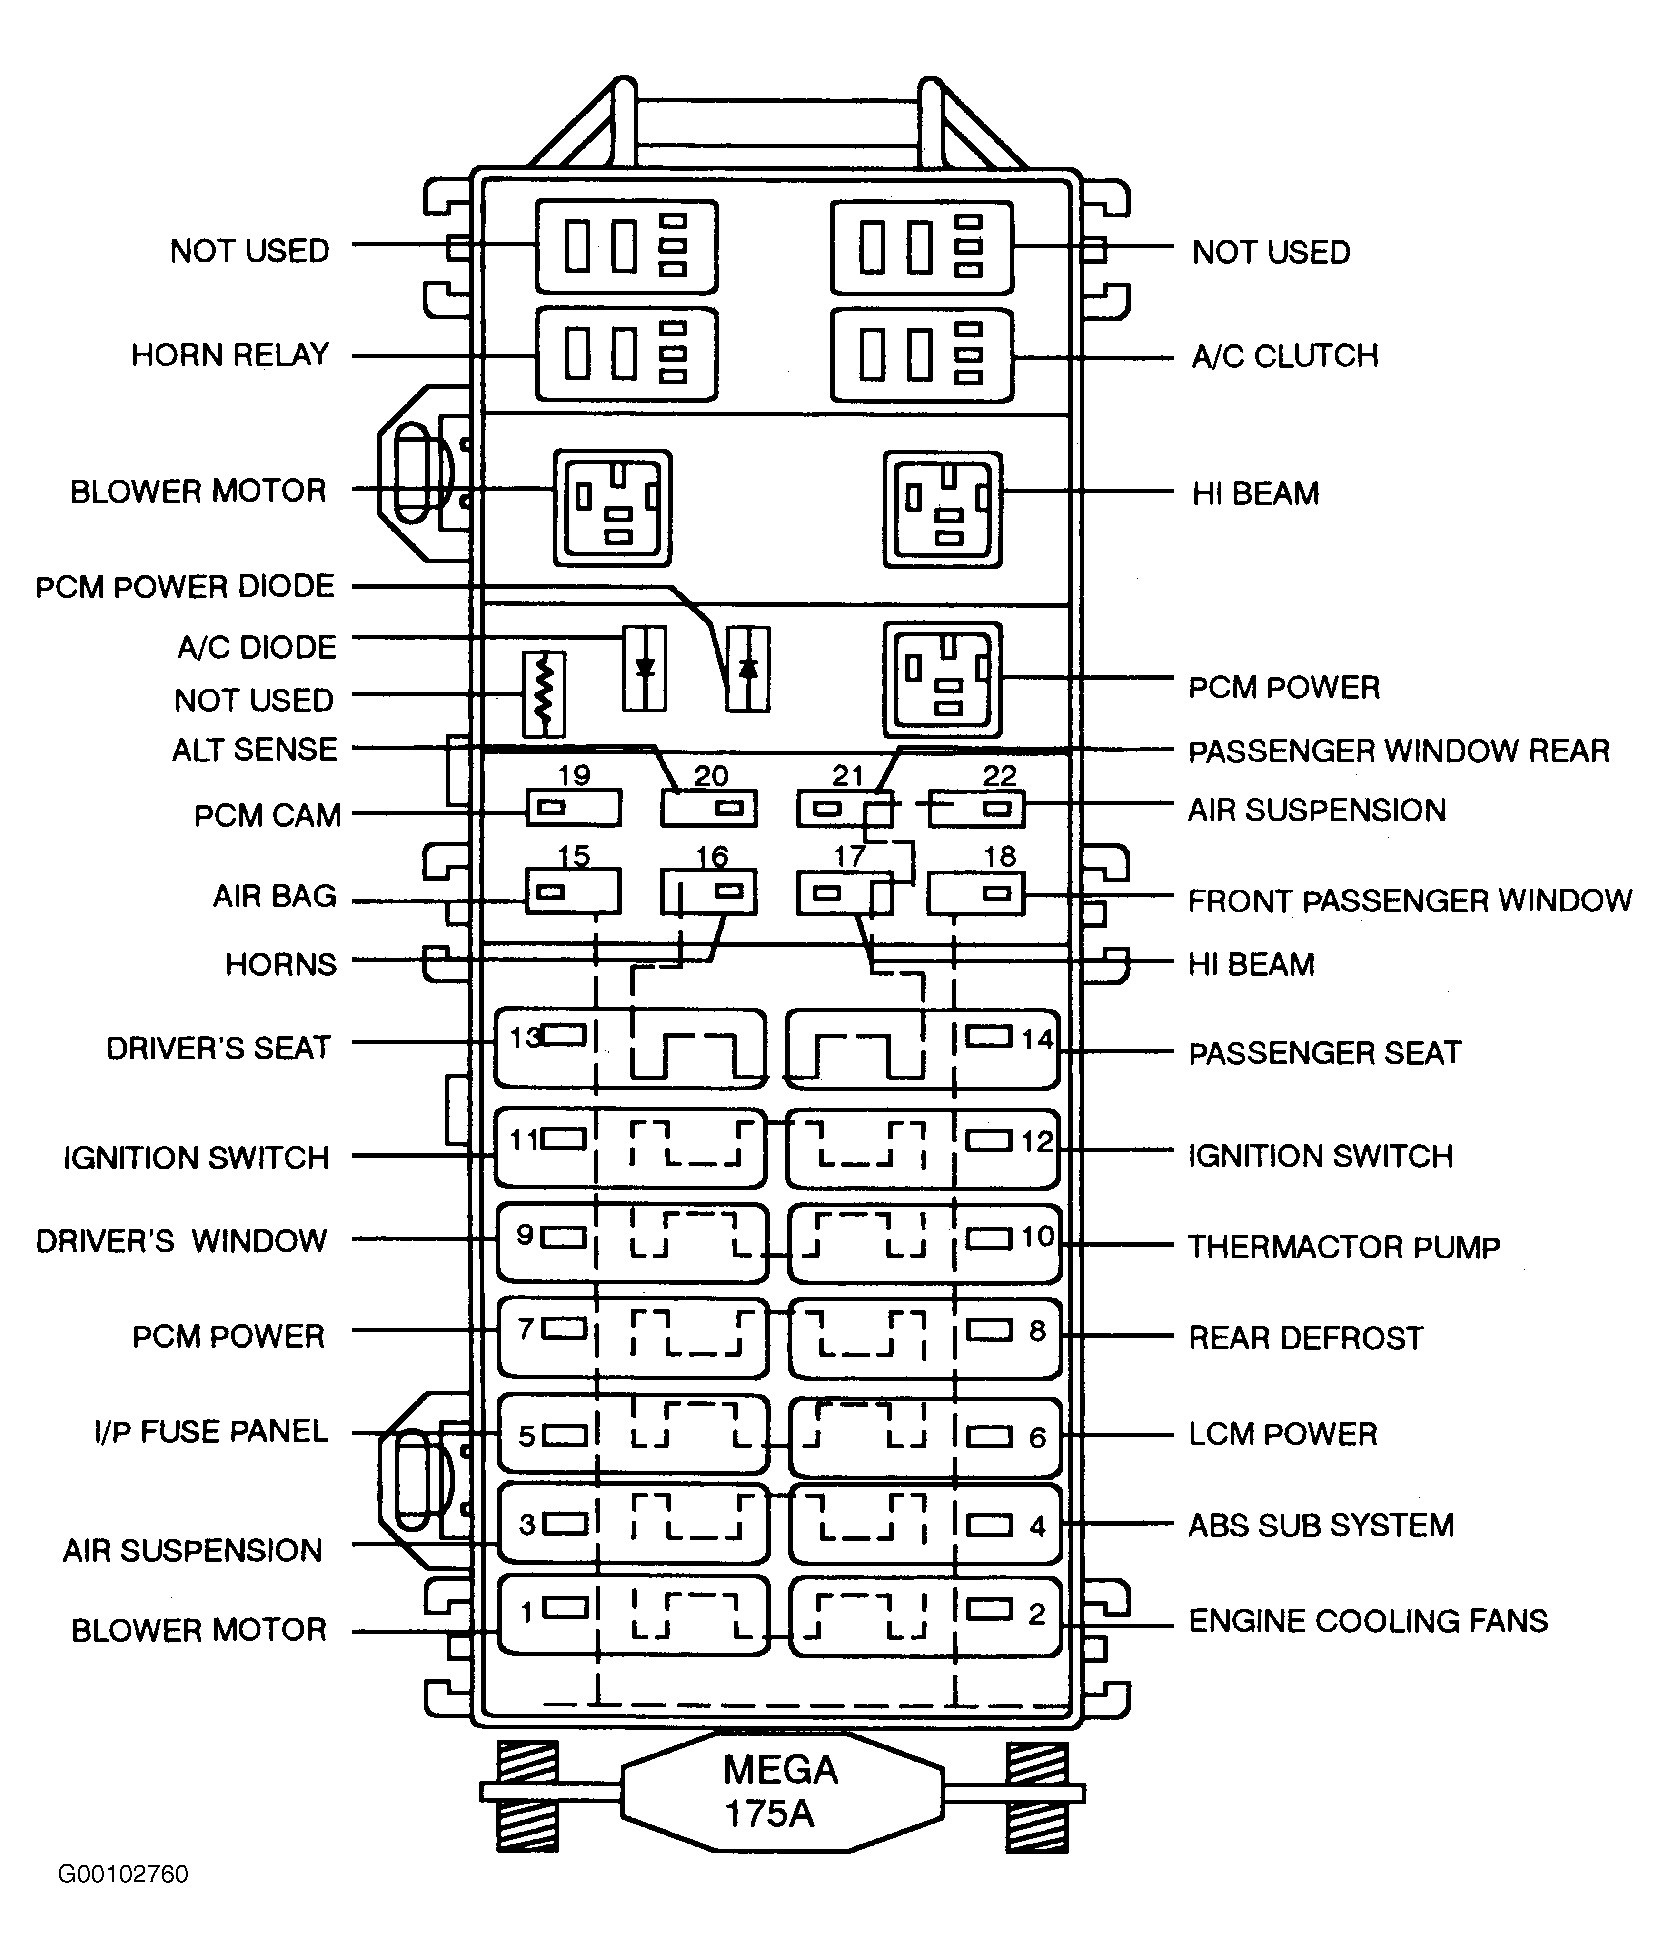 medium resolution of car fuse box layout wiring diagram page02 lincoln town car manual for fuse box schema diagram